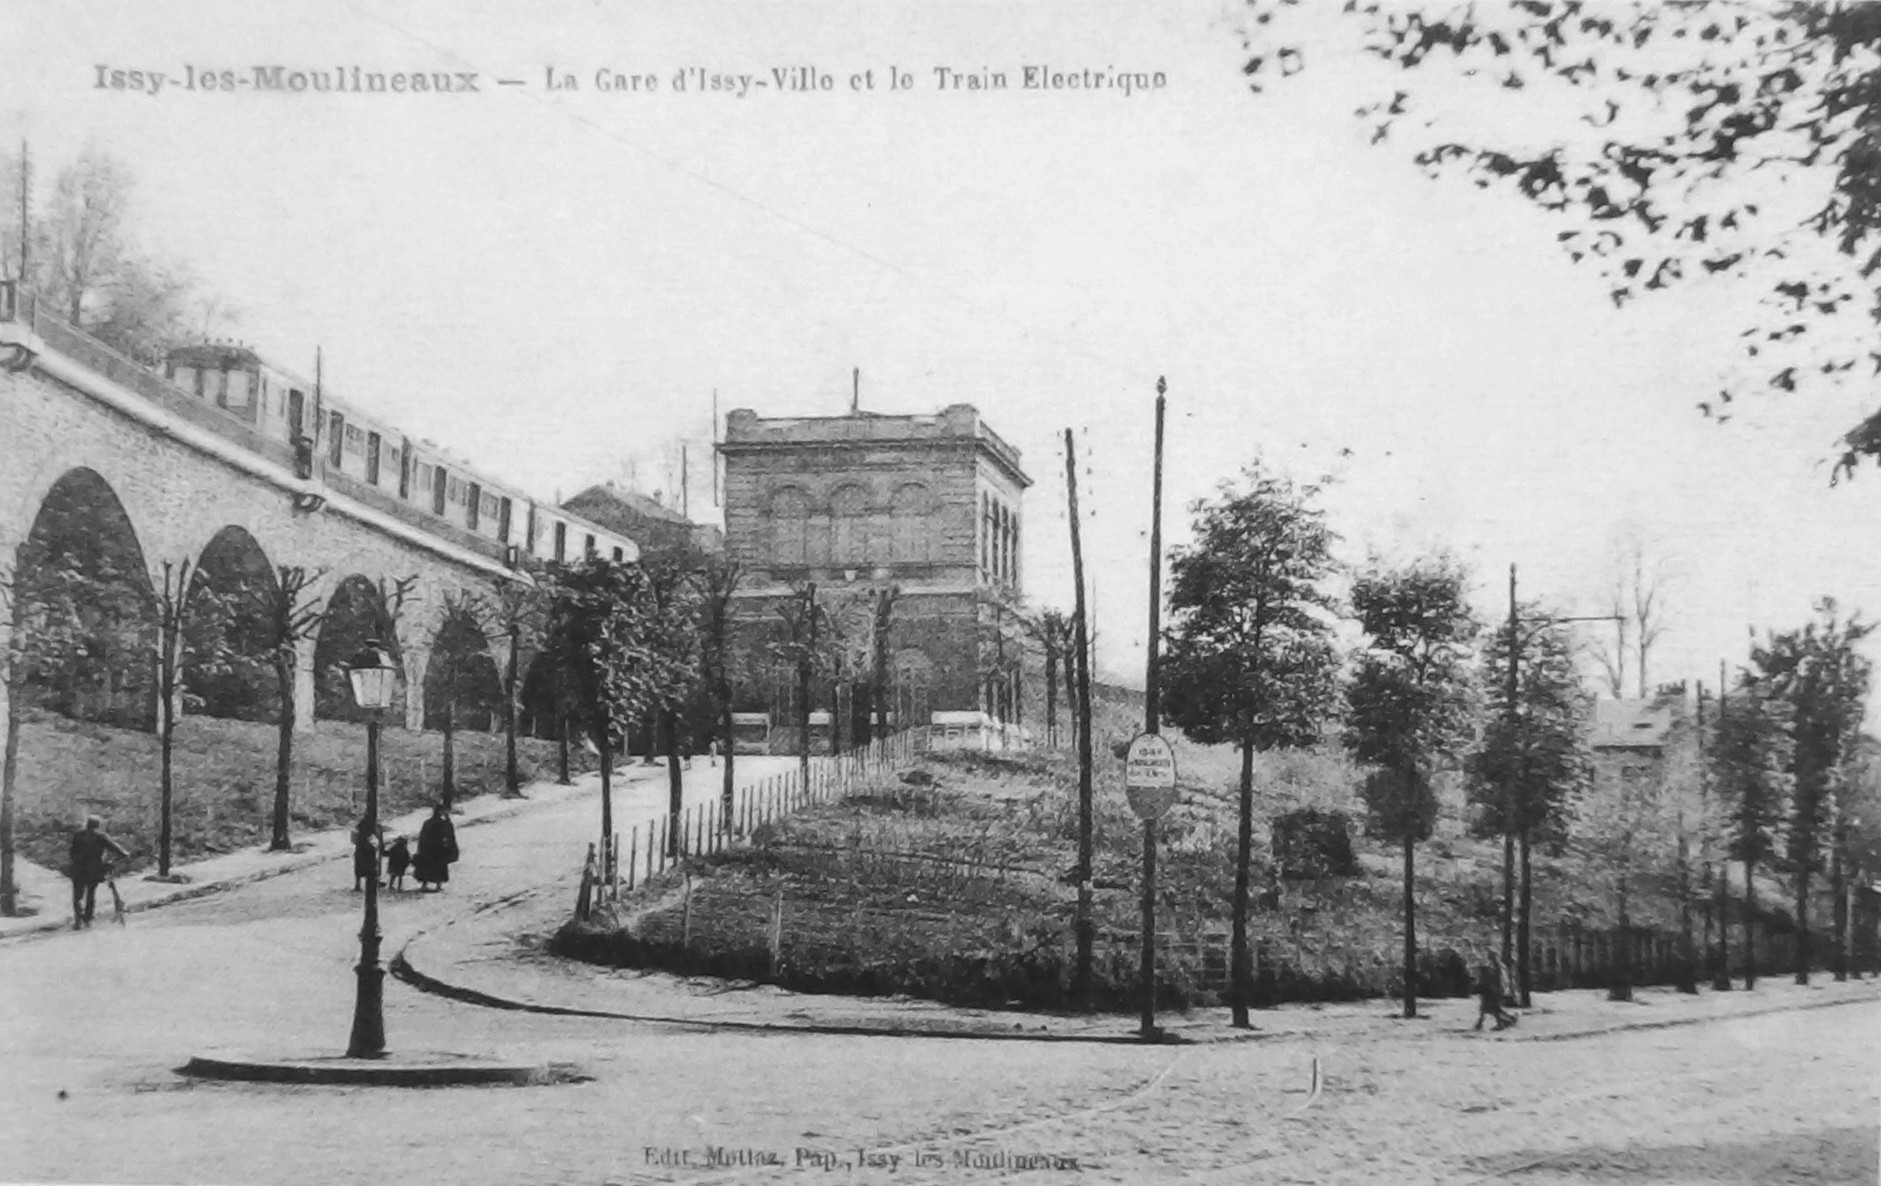 Issy Les Moulineaux Gare D 39 Issy Ville